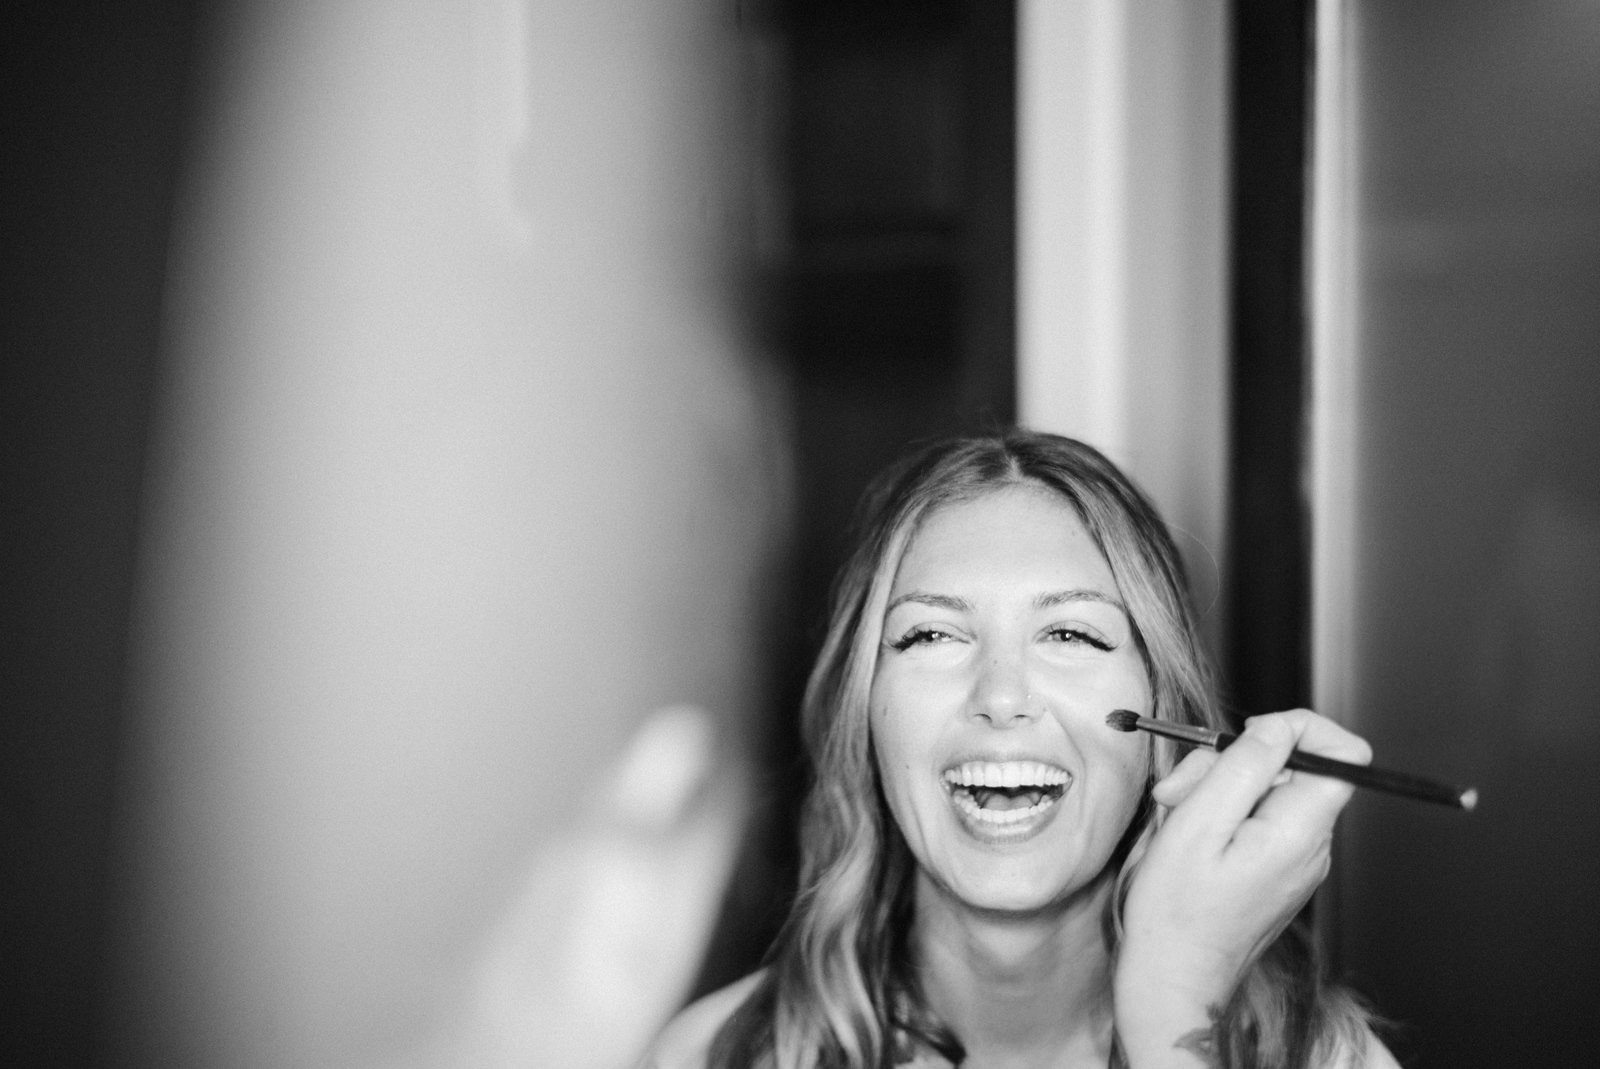 182-happy-bride-getting-ready-at-fireseed-catering-by-washington-wedding-photographer.jpg